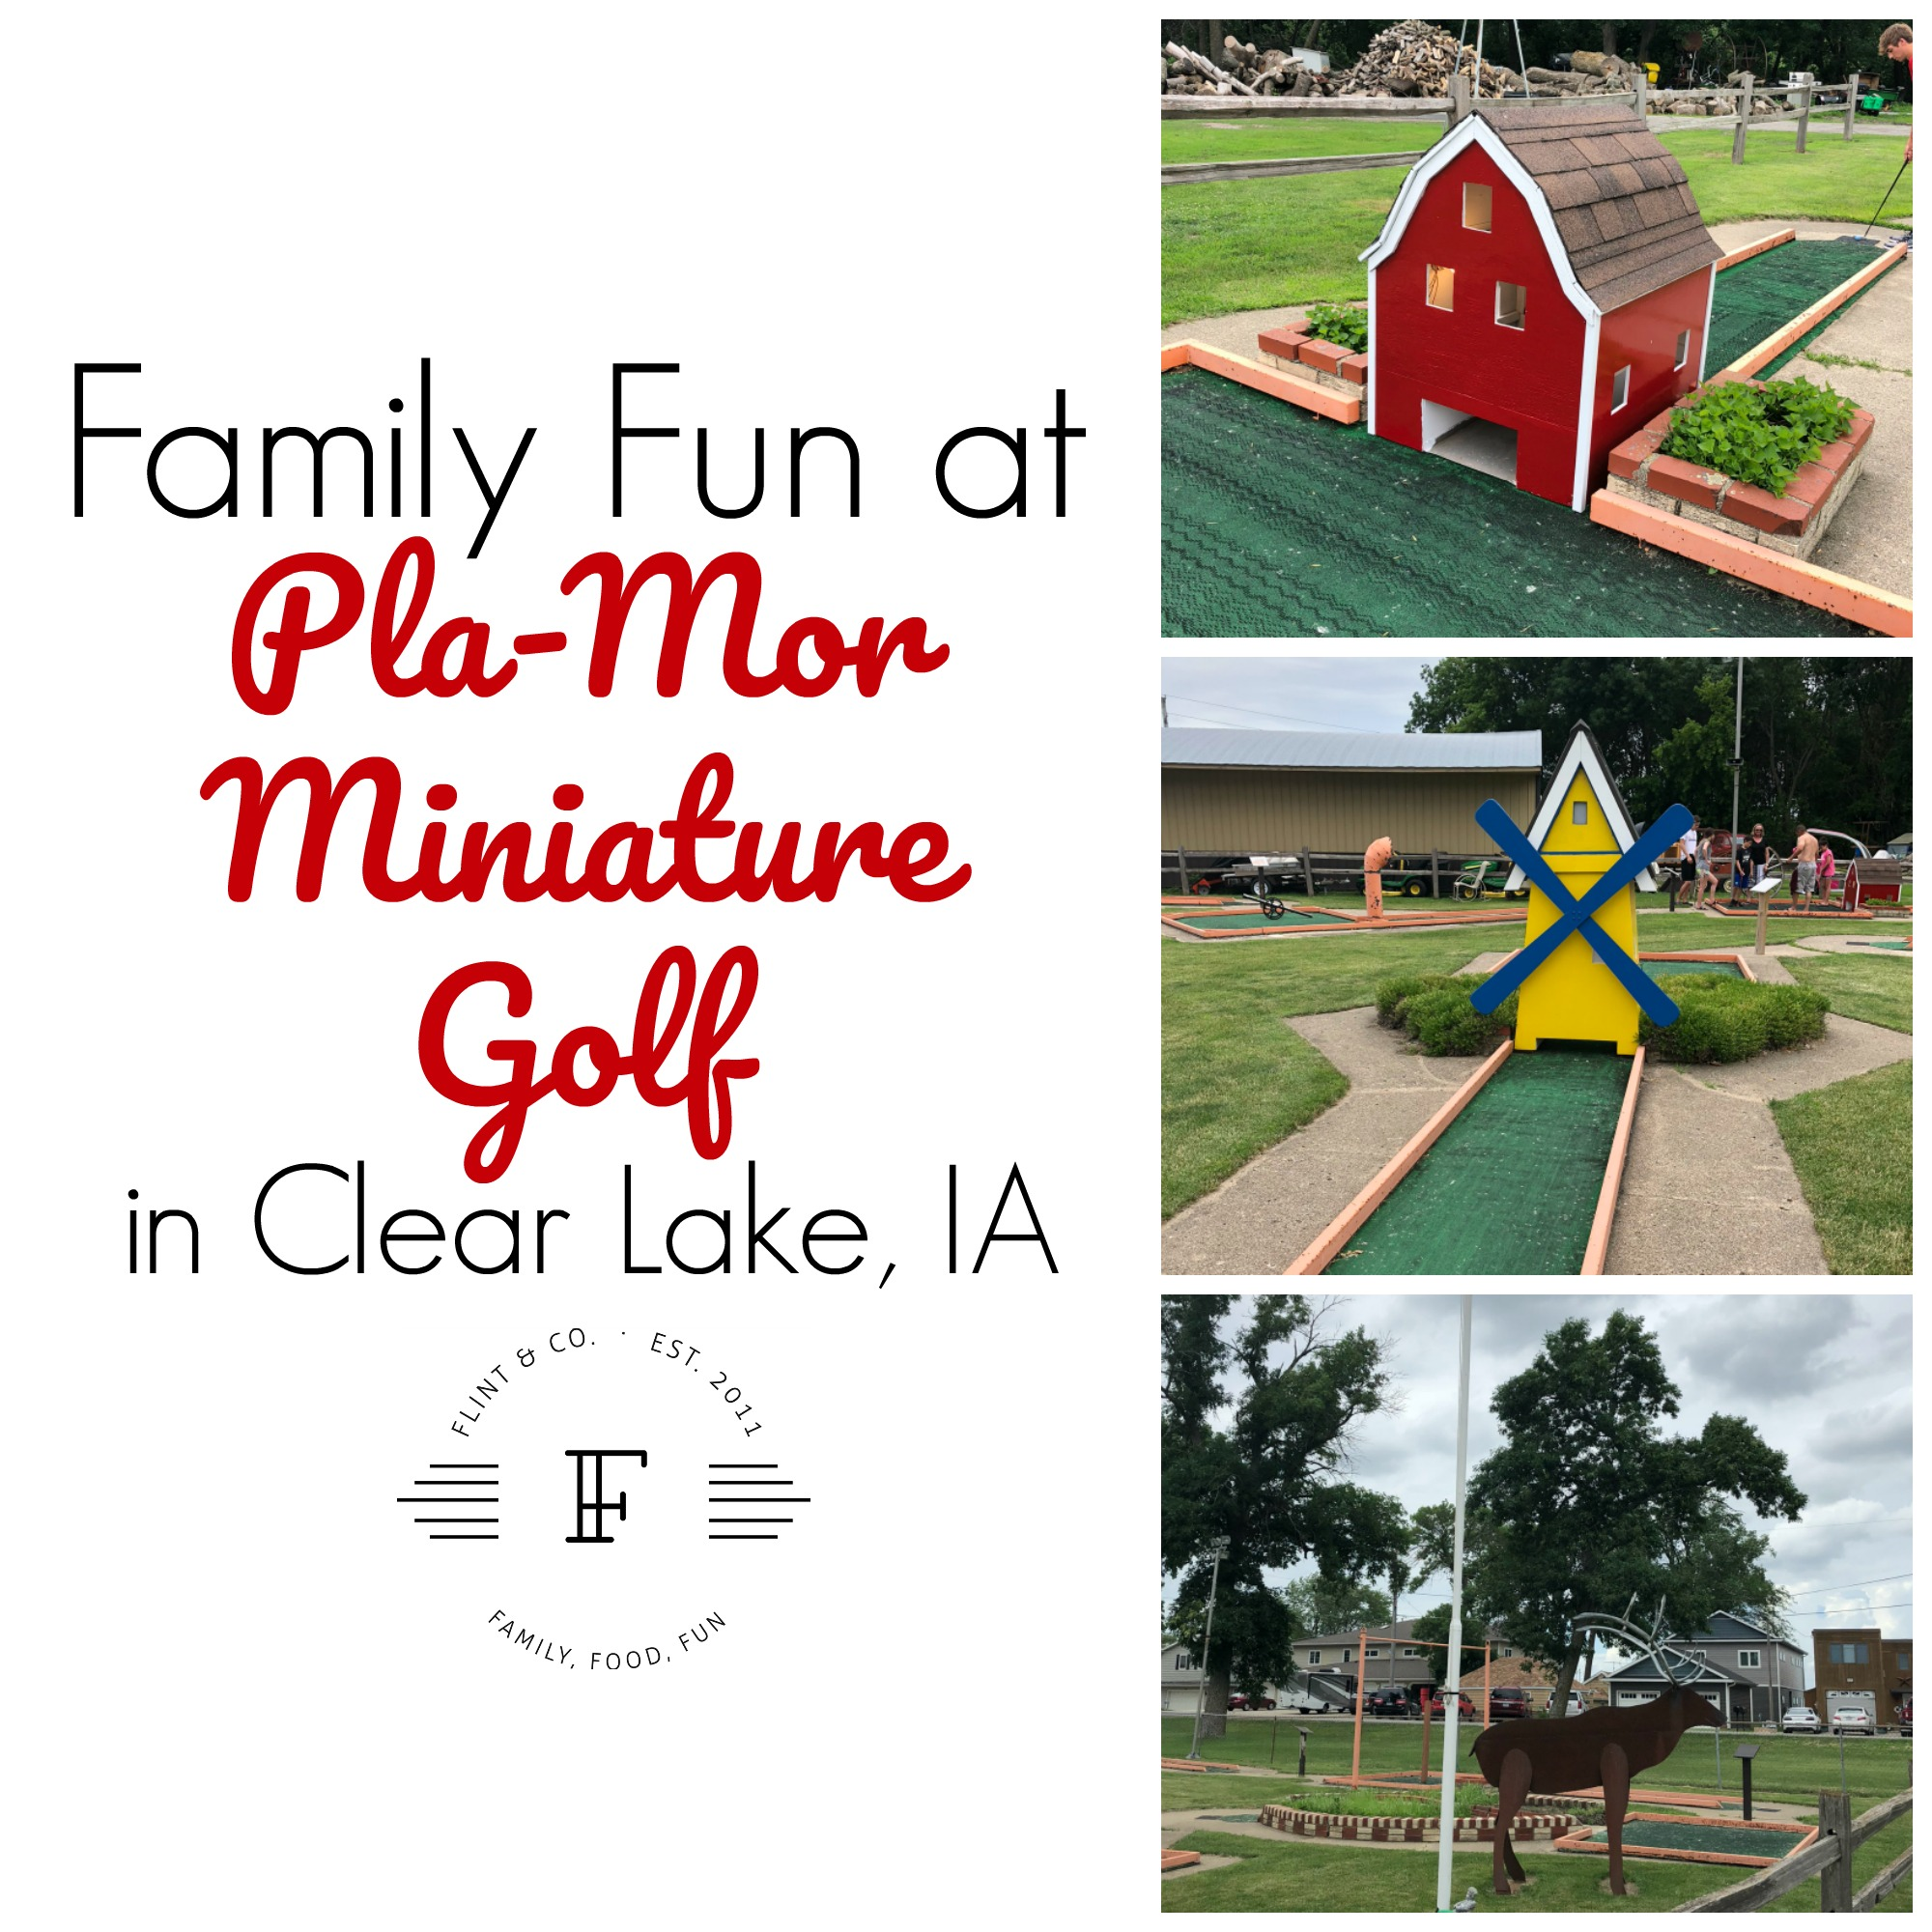 Exploring our Backyard Mini Golf & Ice Cream in Clear Lake Flint & Co